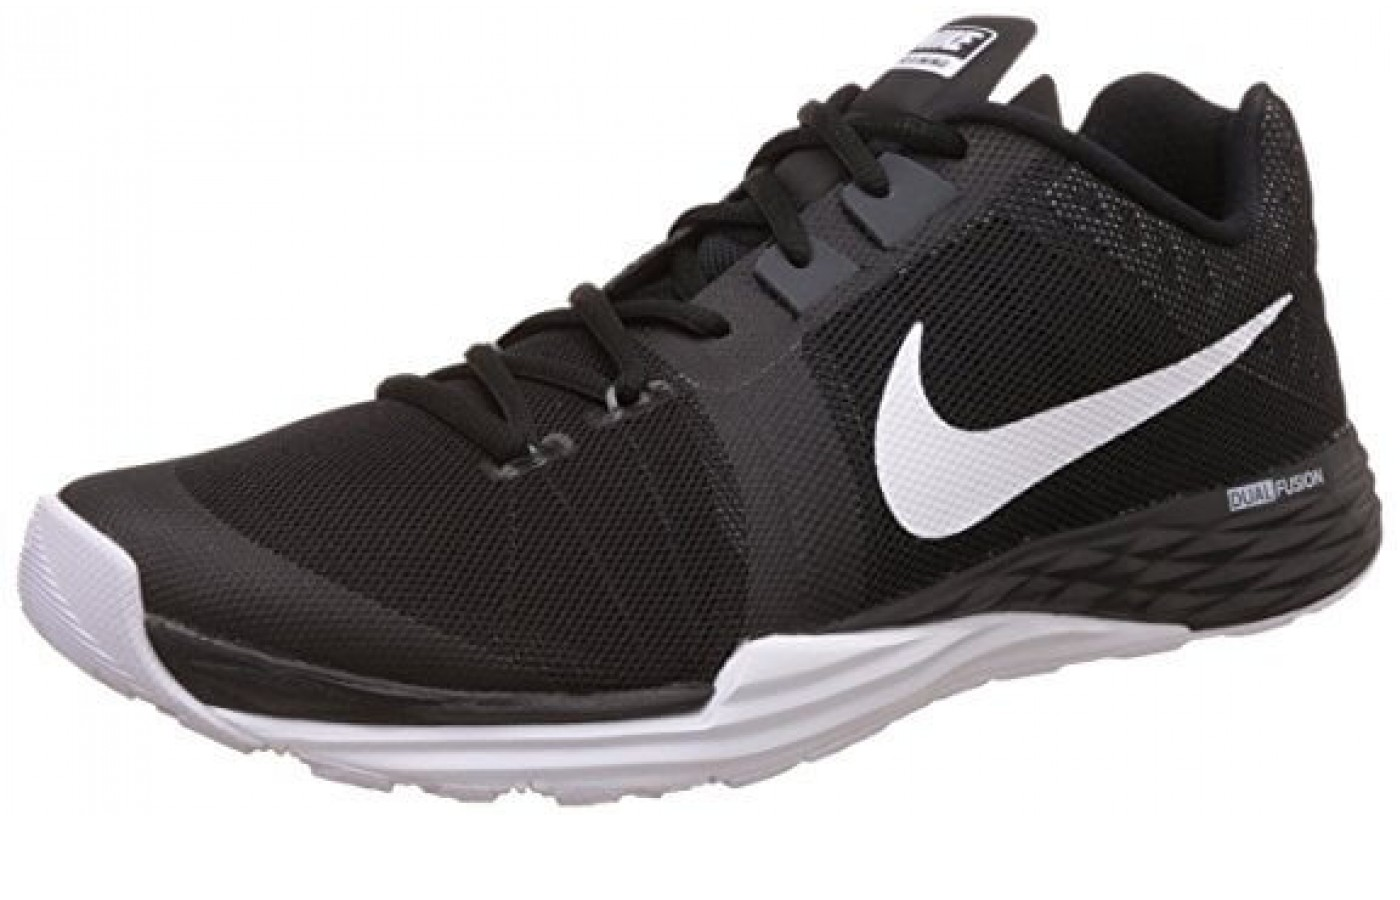 The Nike Prime Iron DF SP front angled perspective